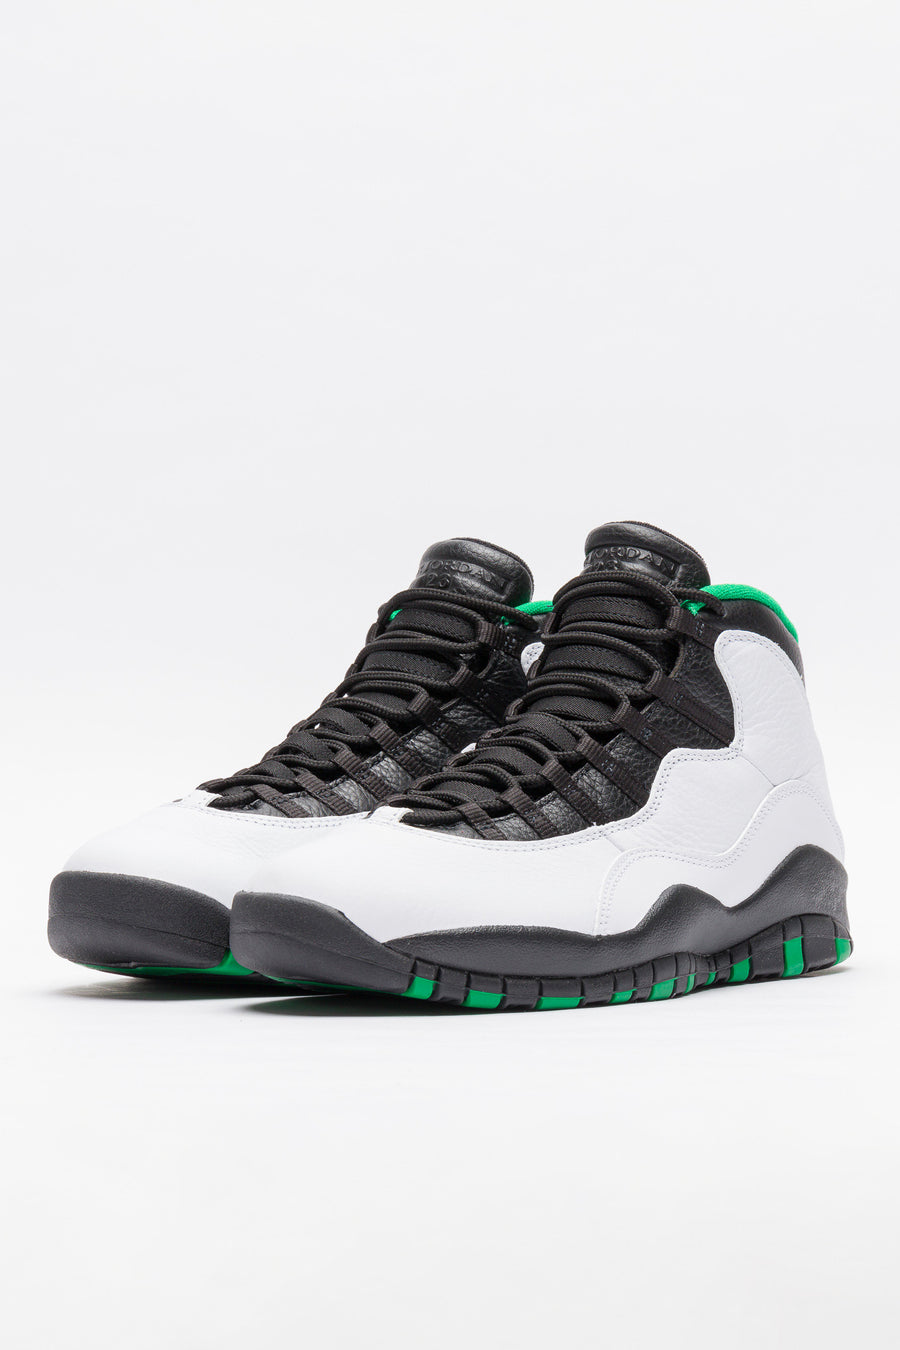 Air Jordan 10 Retro in White/Black/Green